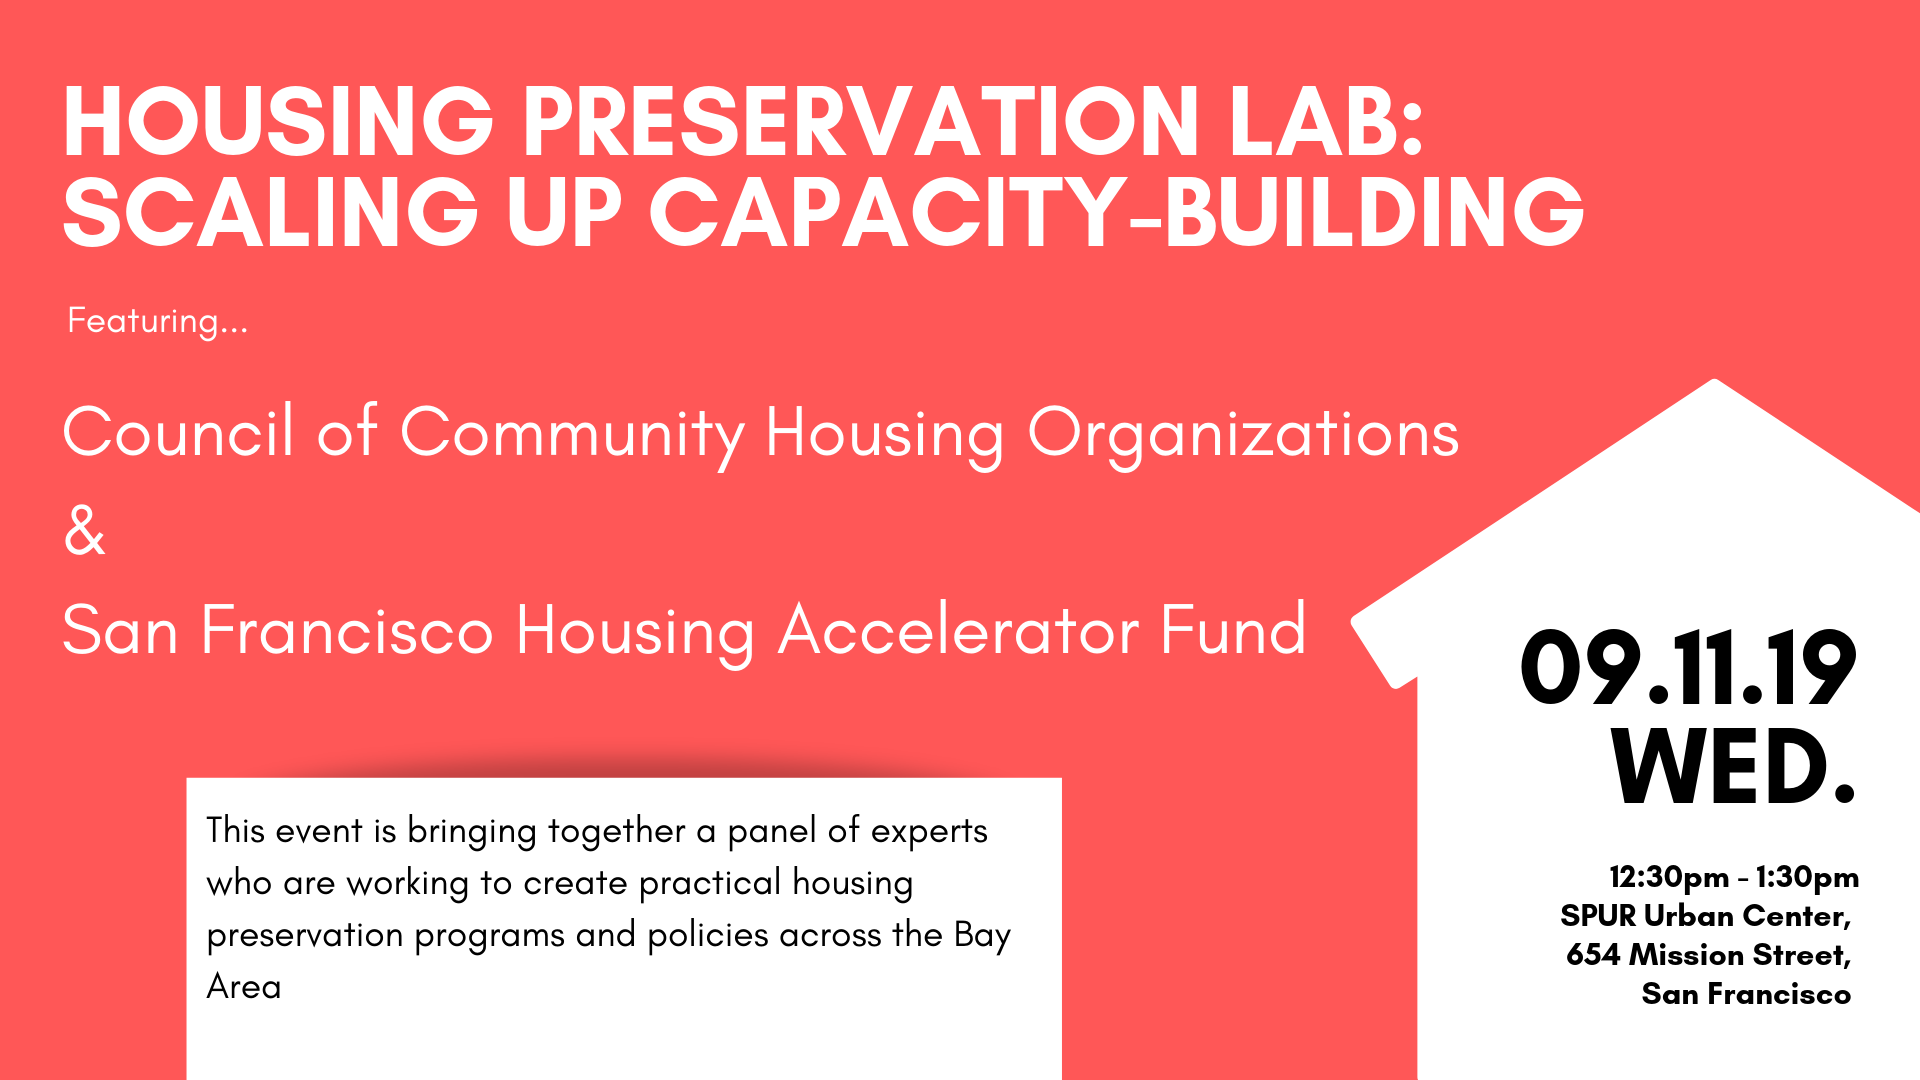 Sept 11: Housing Preservation Lab: Scaling Up Capacity-Building - This event brings together a panel of experts who are working to create practical housing preservation programs and policies across the Bay Area.